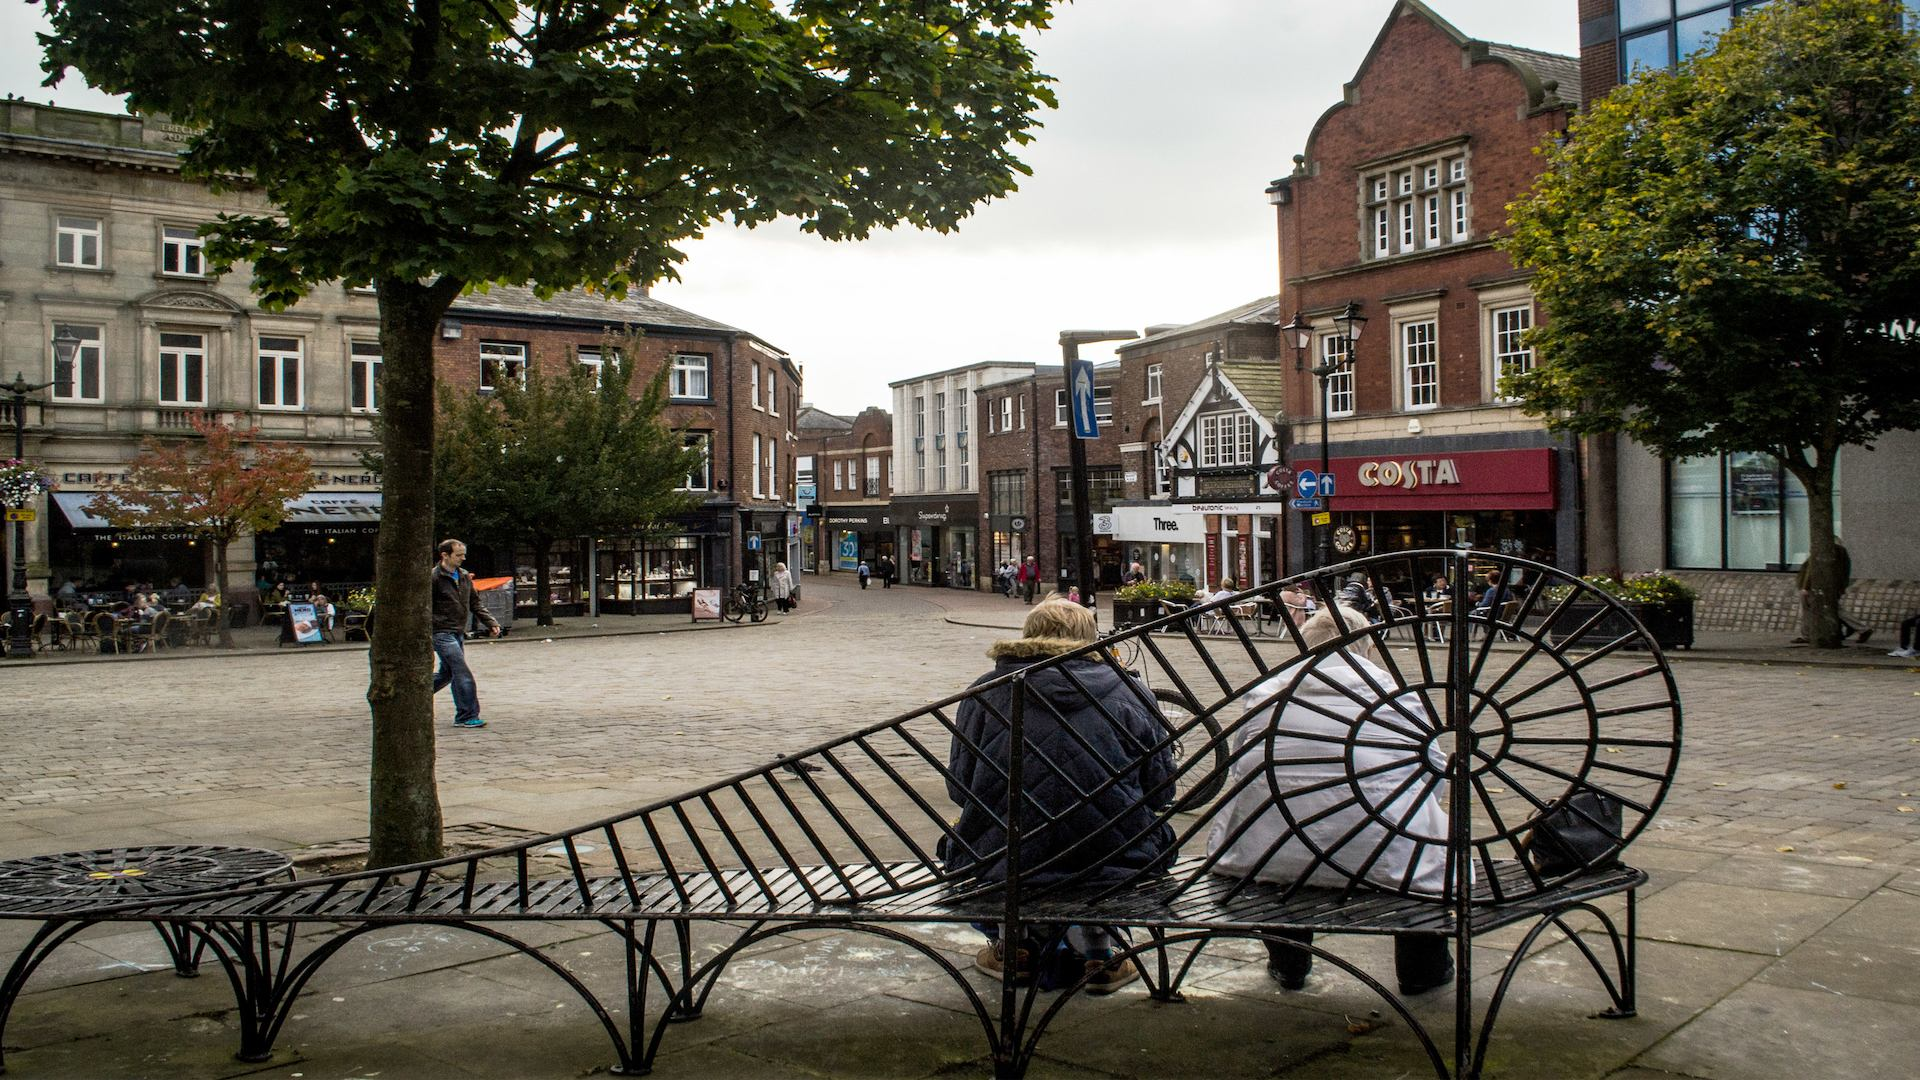 Two women sitting on a bench in Macclesfield